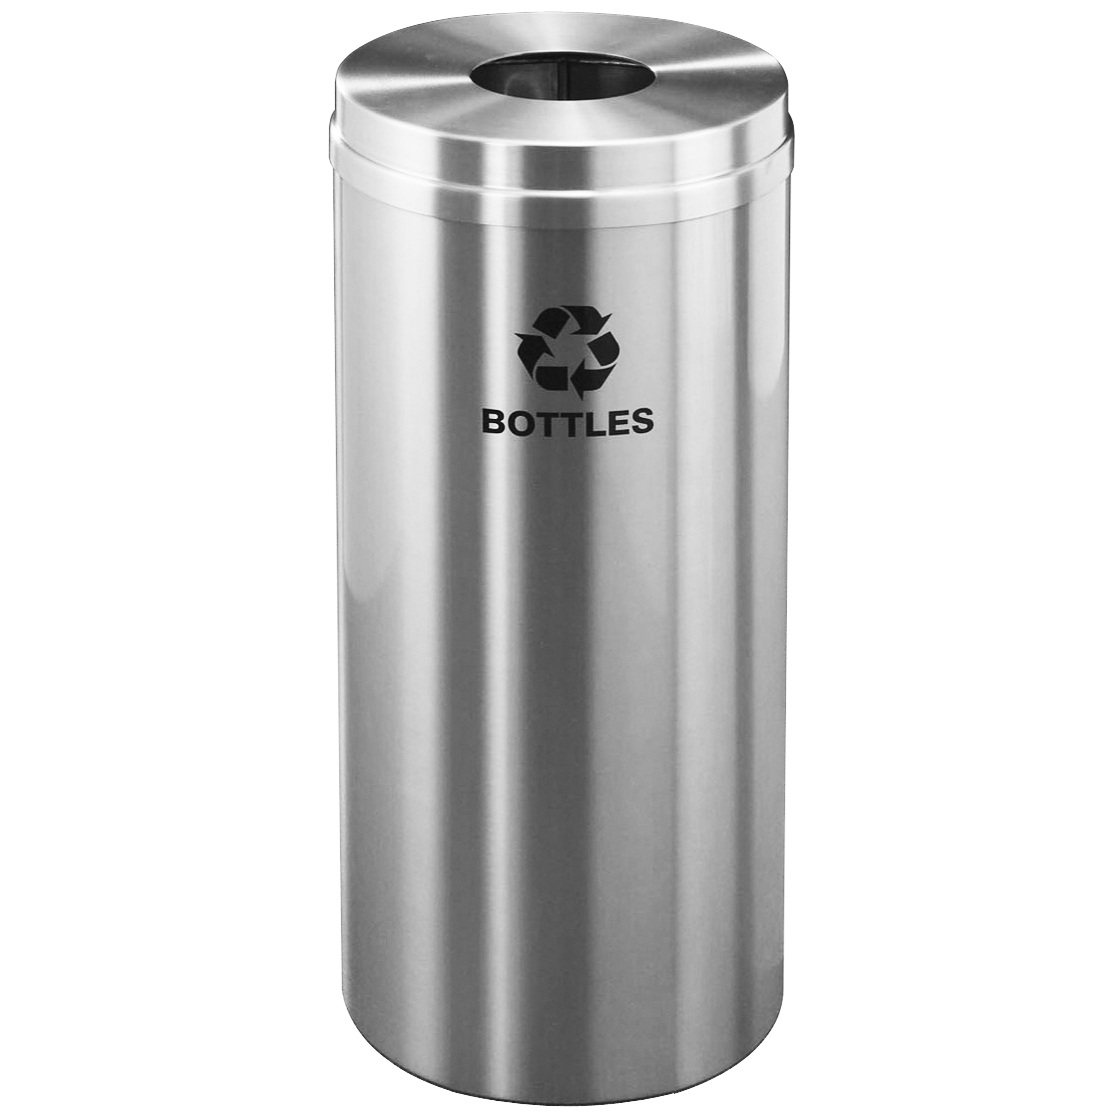 Aluminium Garbage Cans : Brushed aluminum trash can